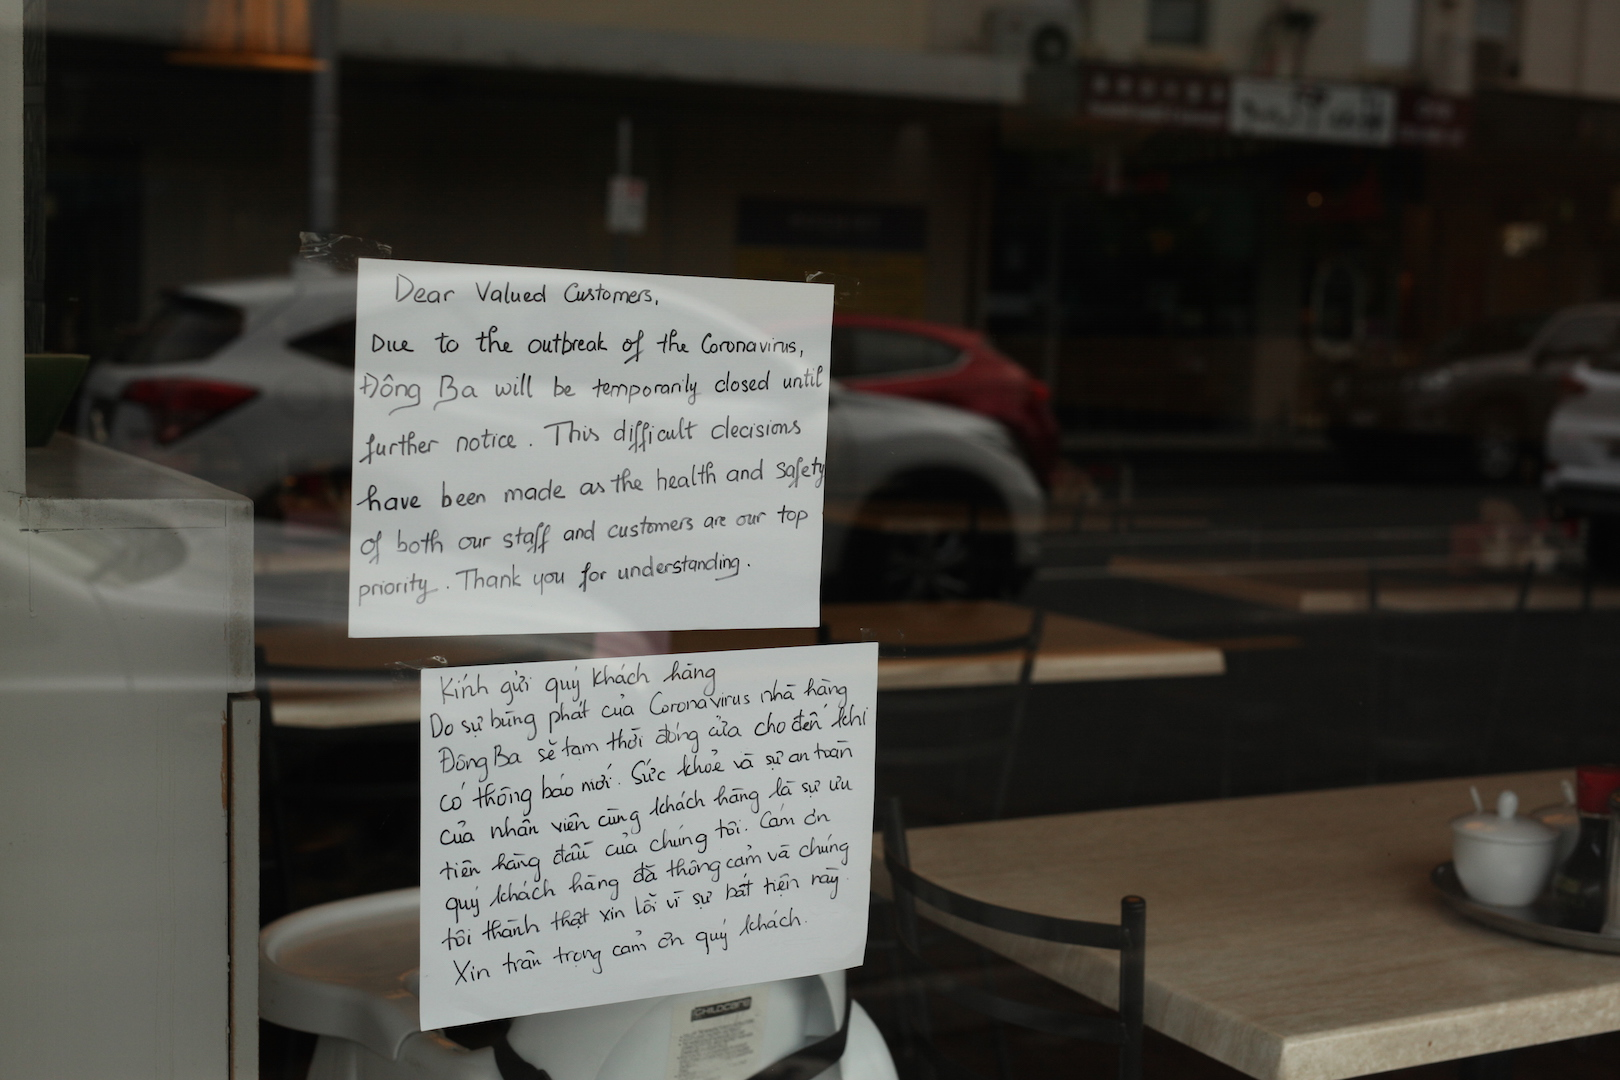 Messages like these, posted on the window of a Footscray Vietnamese eatery, are appearing in windows along the normally lively Footscray shopping precinct.